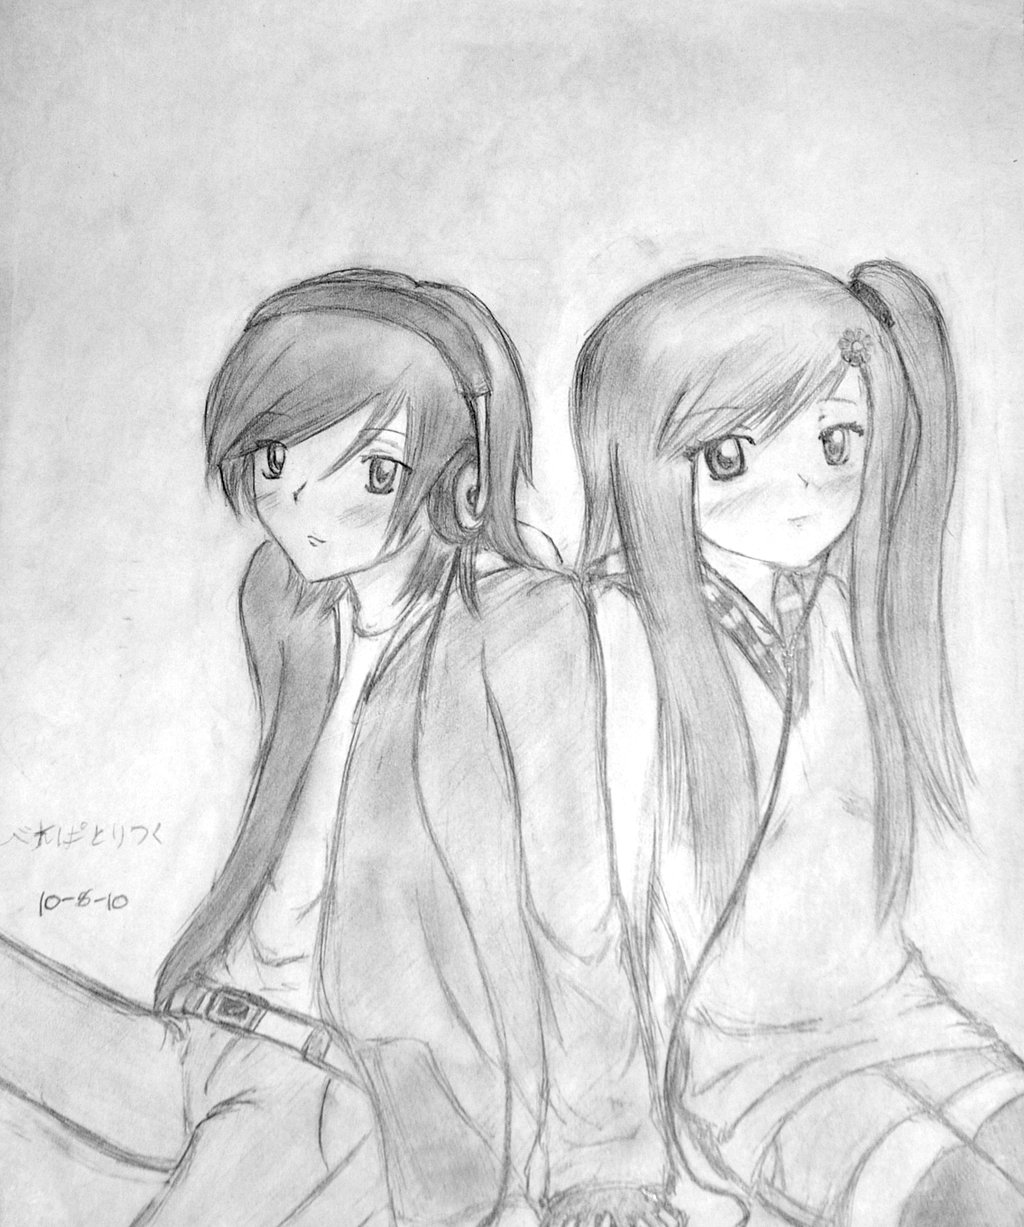 Cute anime couple holding hands drawing drawingsomeone com